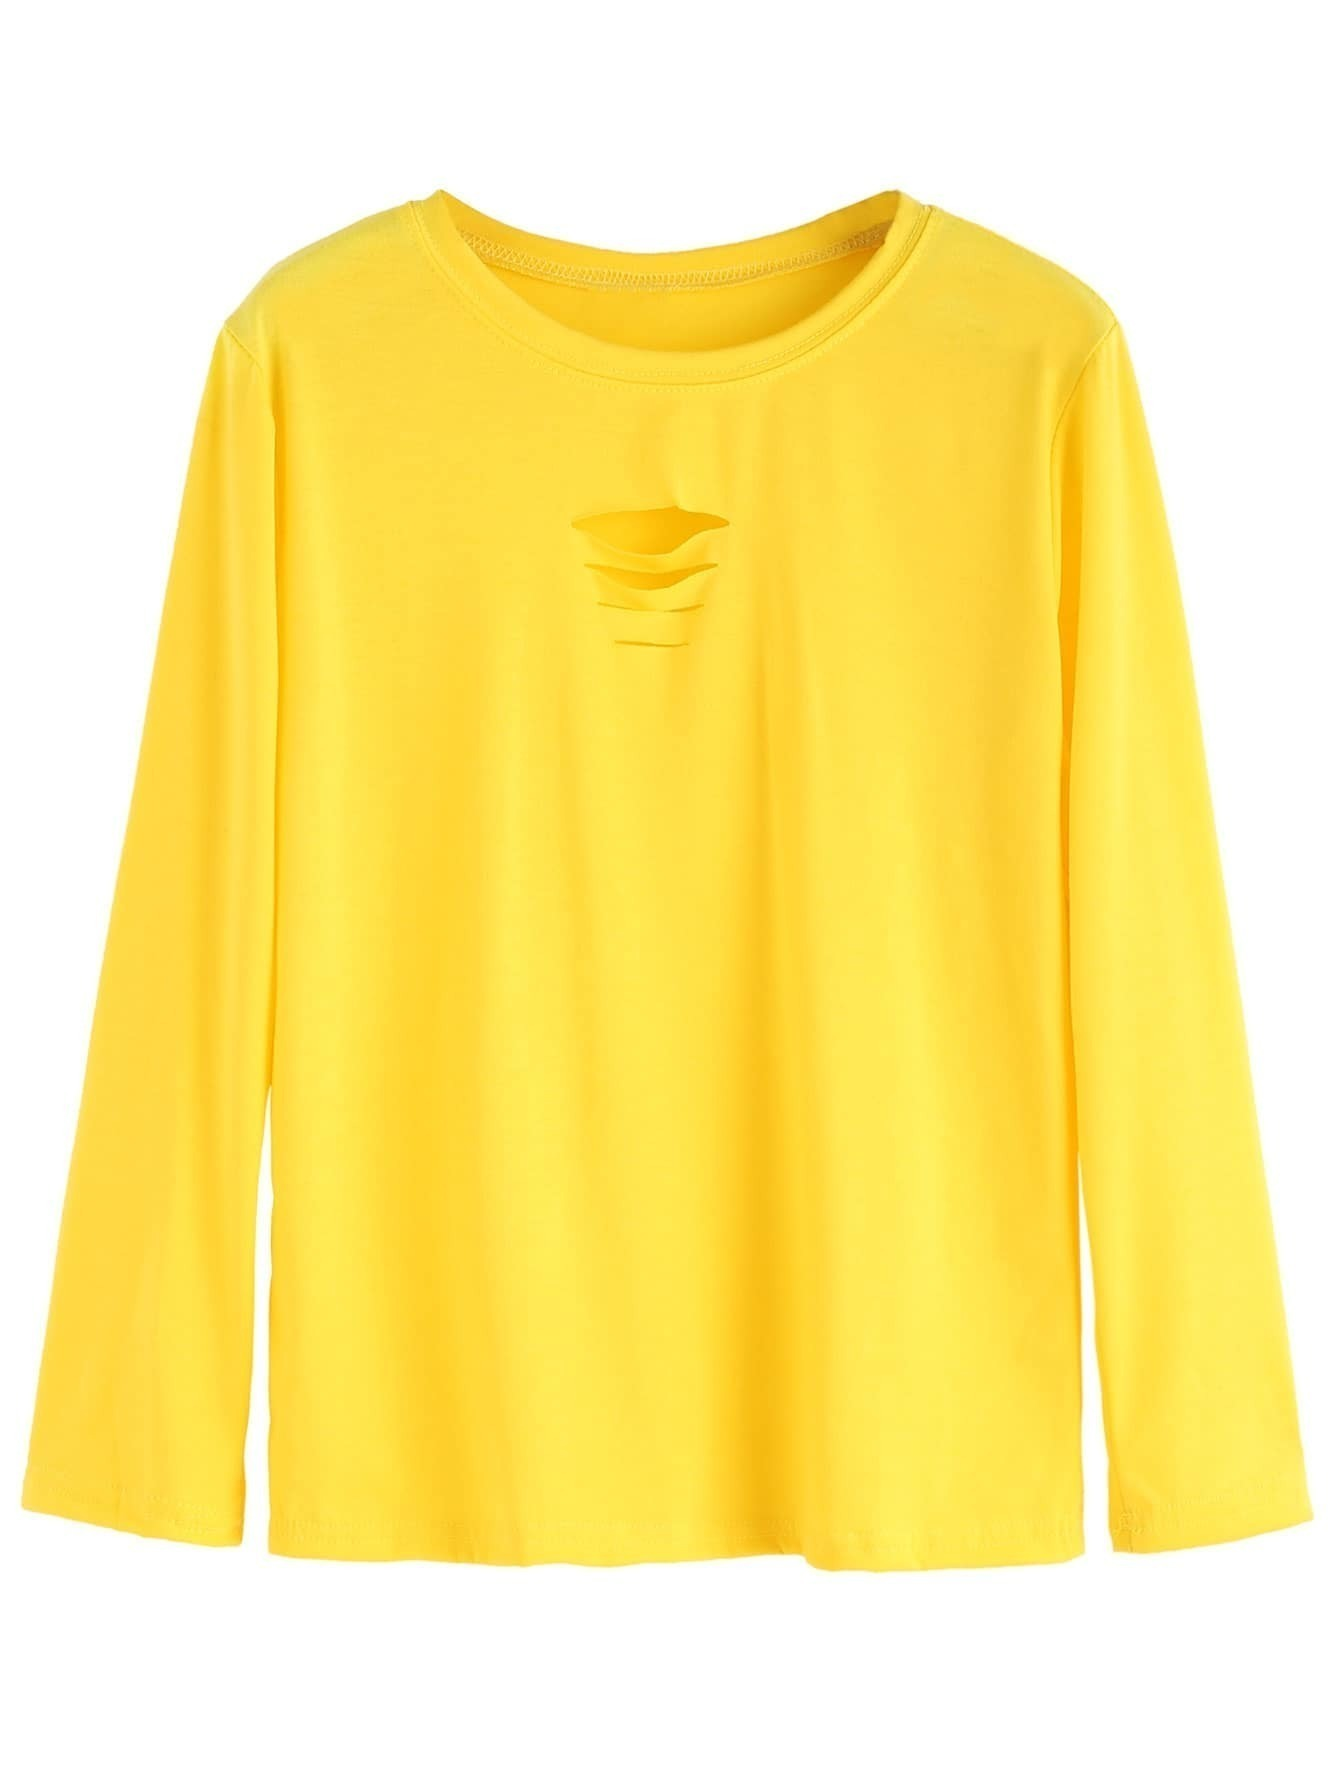 Yellow Ripped Long Sleeve T Shirtfor Women Romwe